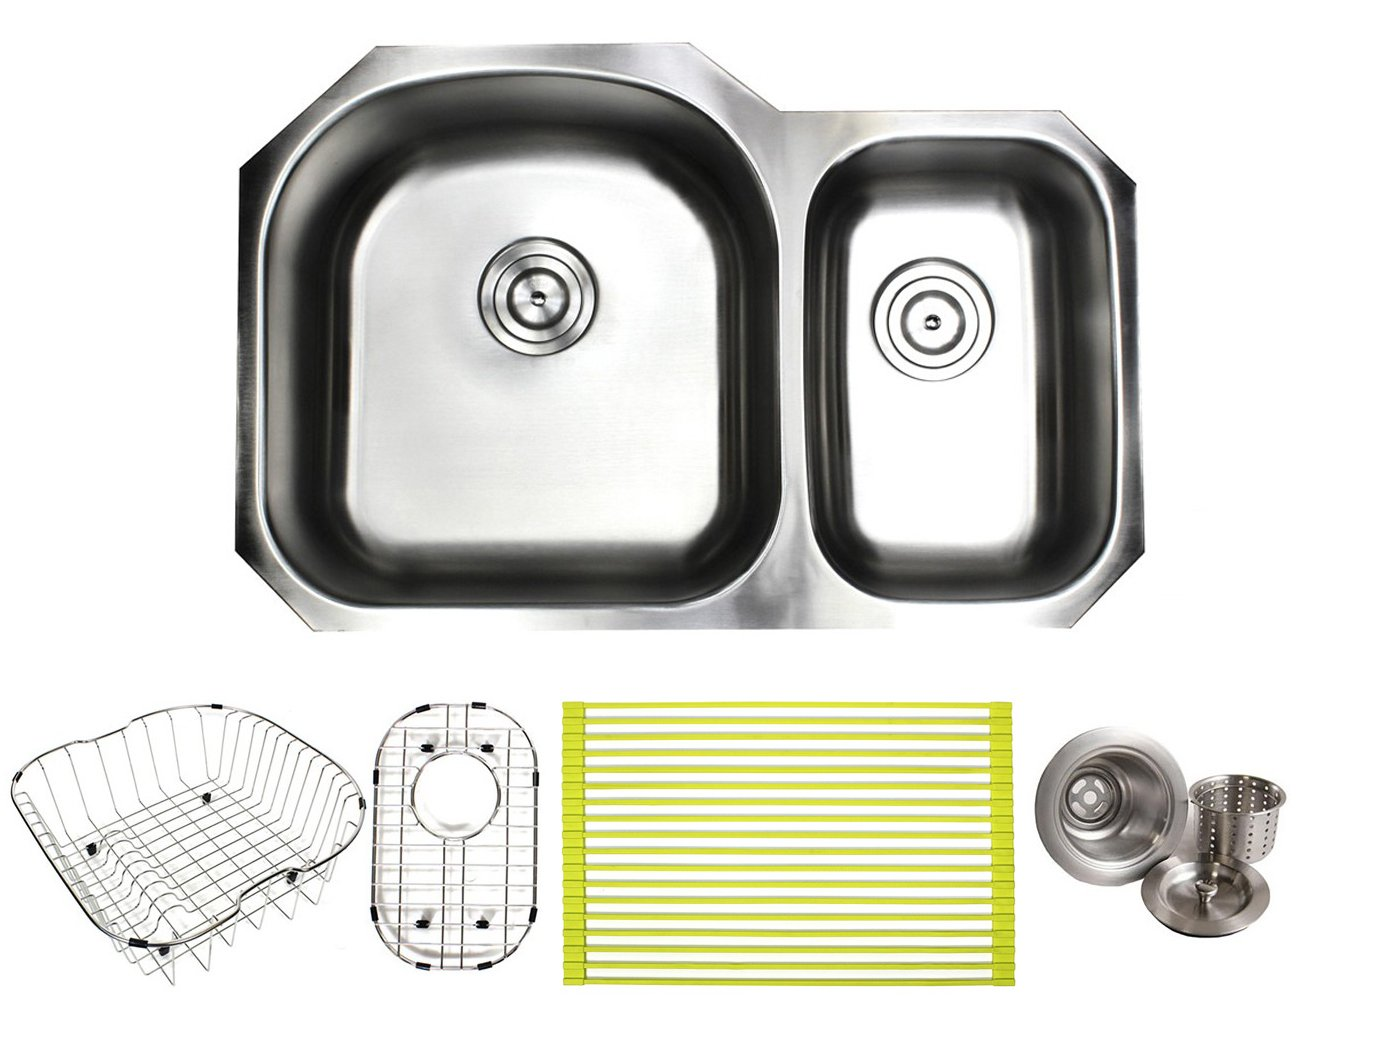 30 Inch Stainless Steel Undermount Double Bowl 60 40 Offset Kitchen Sink – 16 Gauge FREE ACCESSORIES